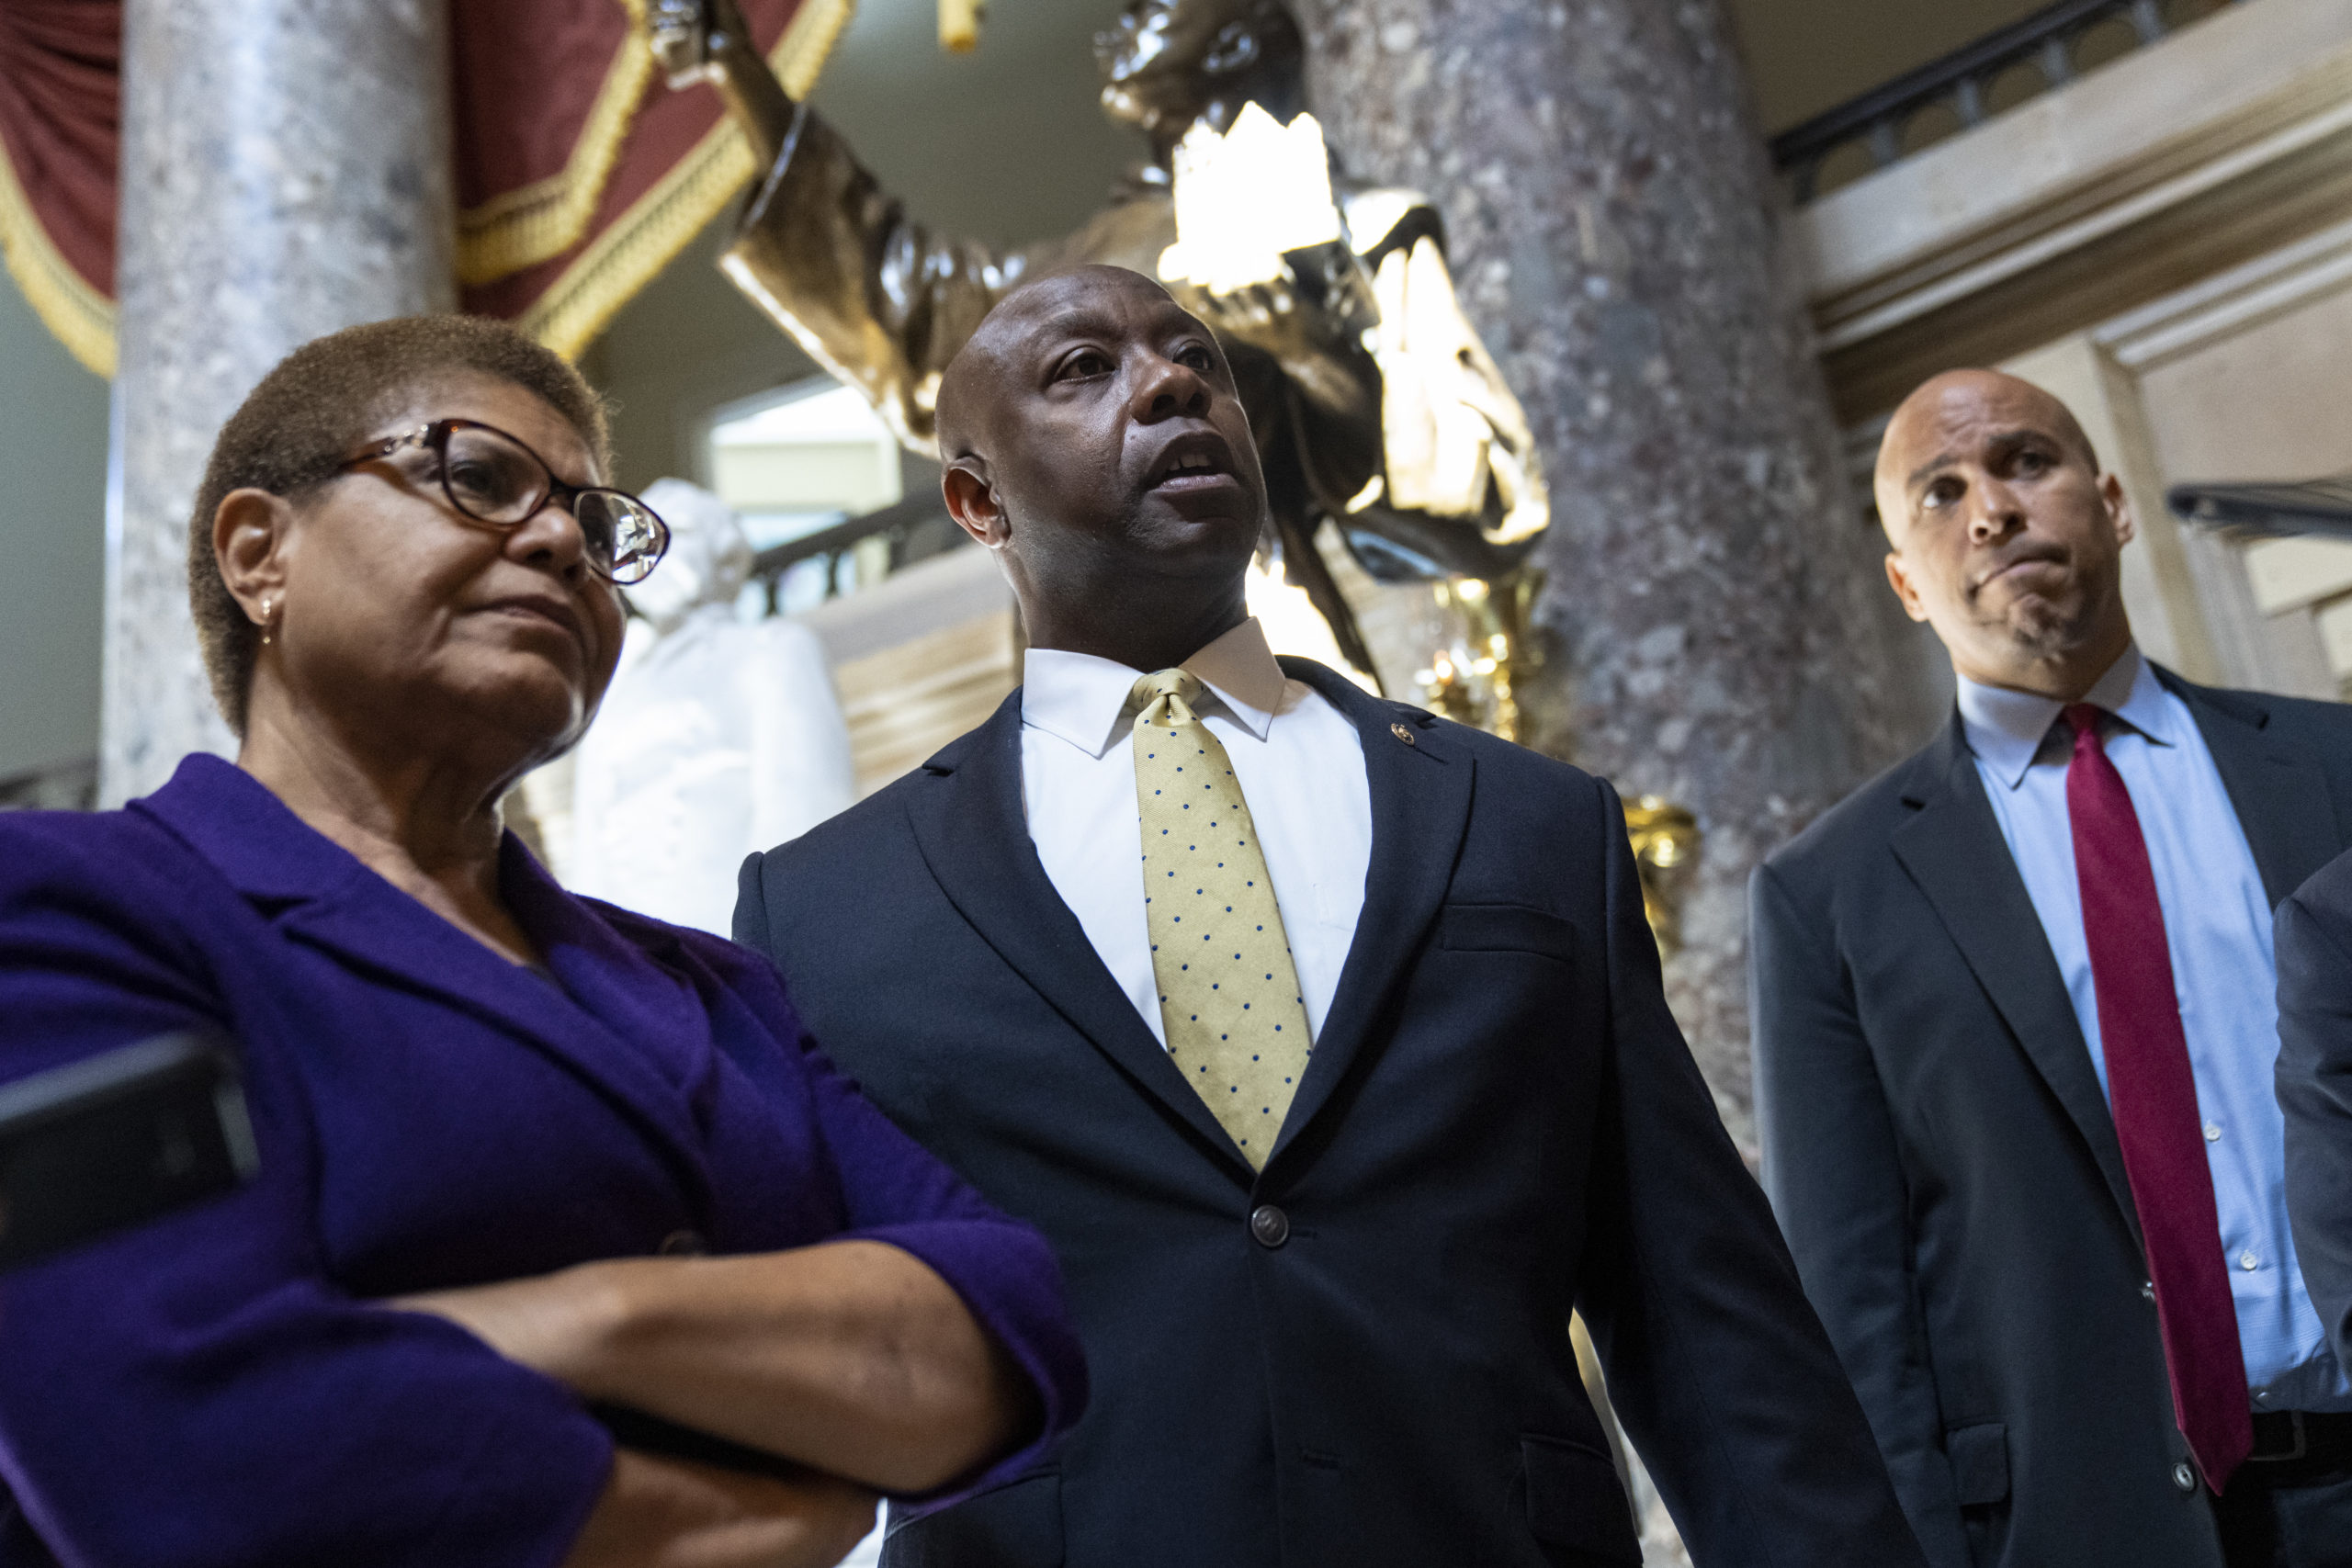 Rep. Karen Bass, Sen. Tim Scott and Sen. Cory Booker are leading discussions on a police reform package. (Drew Angerer/Getty Images)